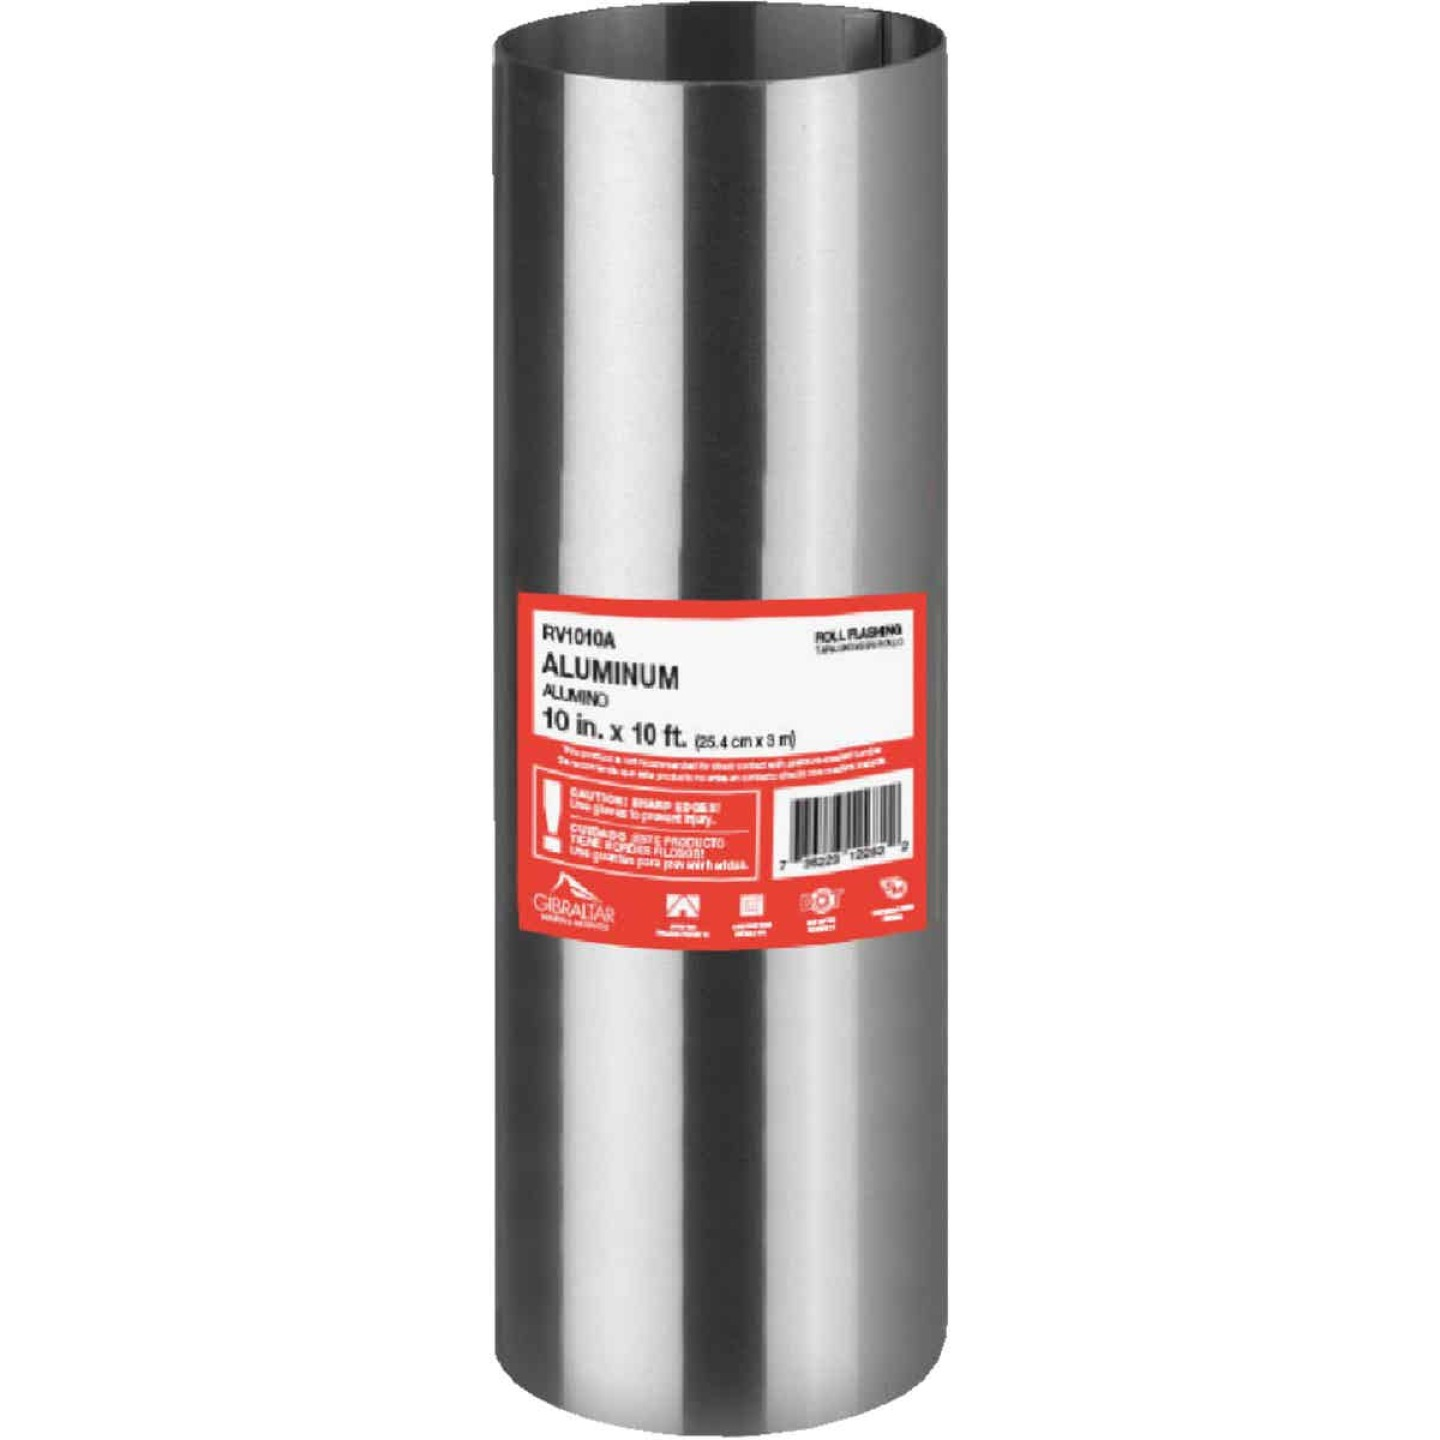 NorWesco 10 In. x 10 Ft. Mill Aluminum Roll Valley Flashing Image 1